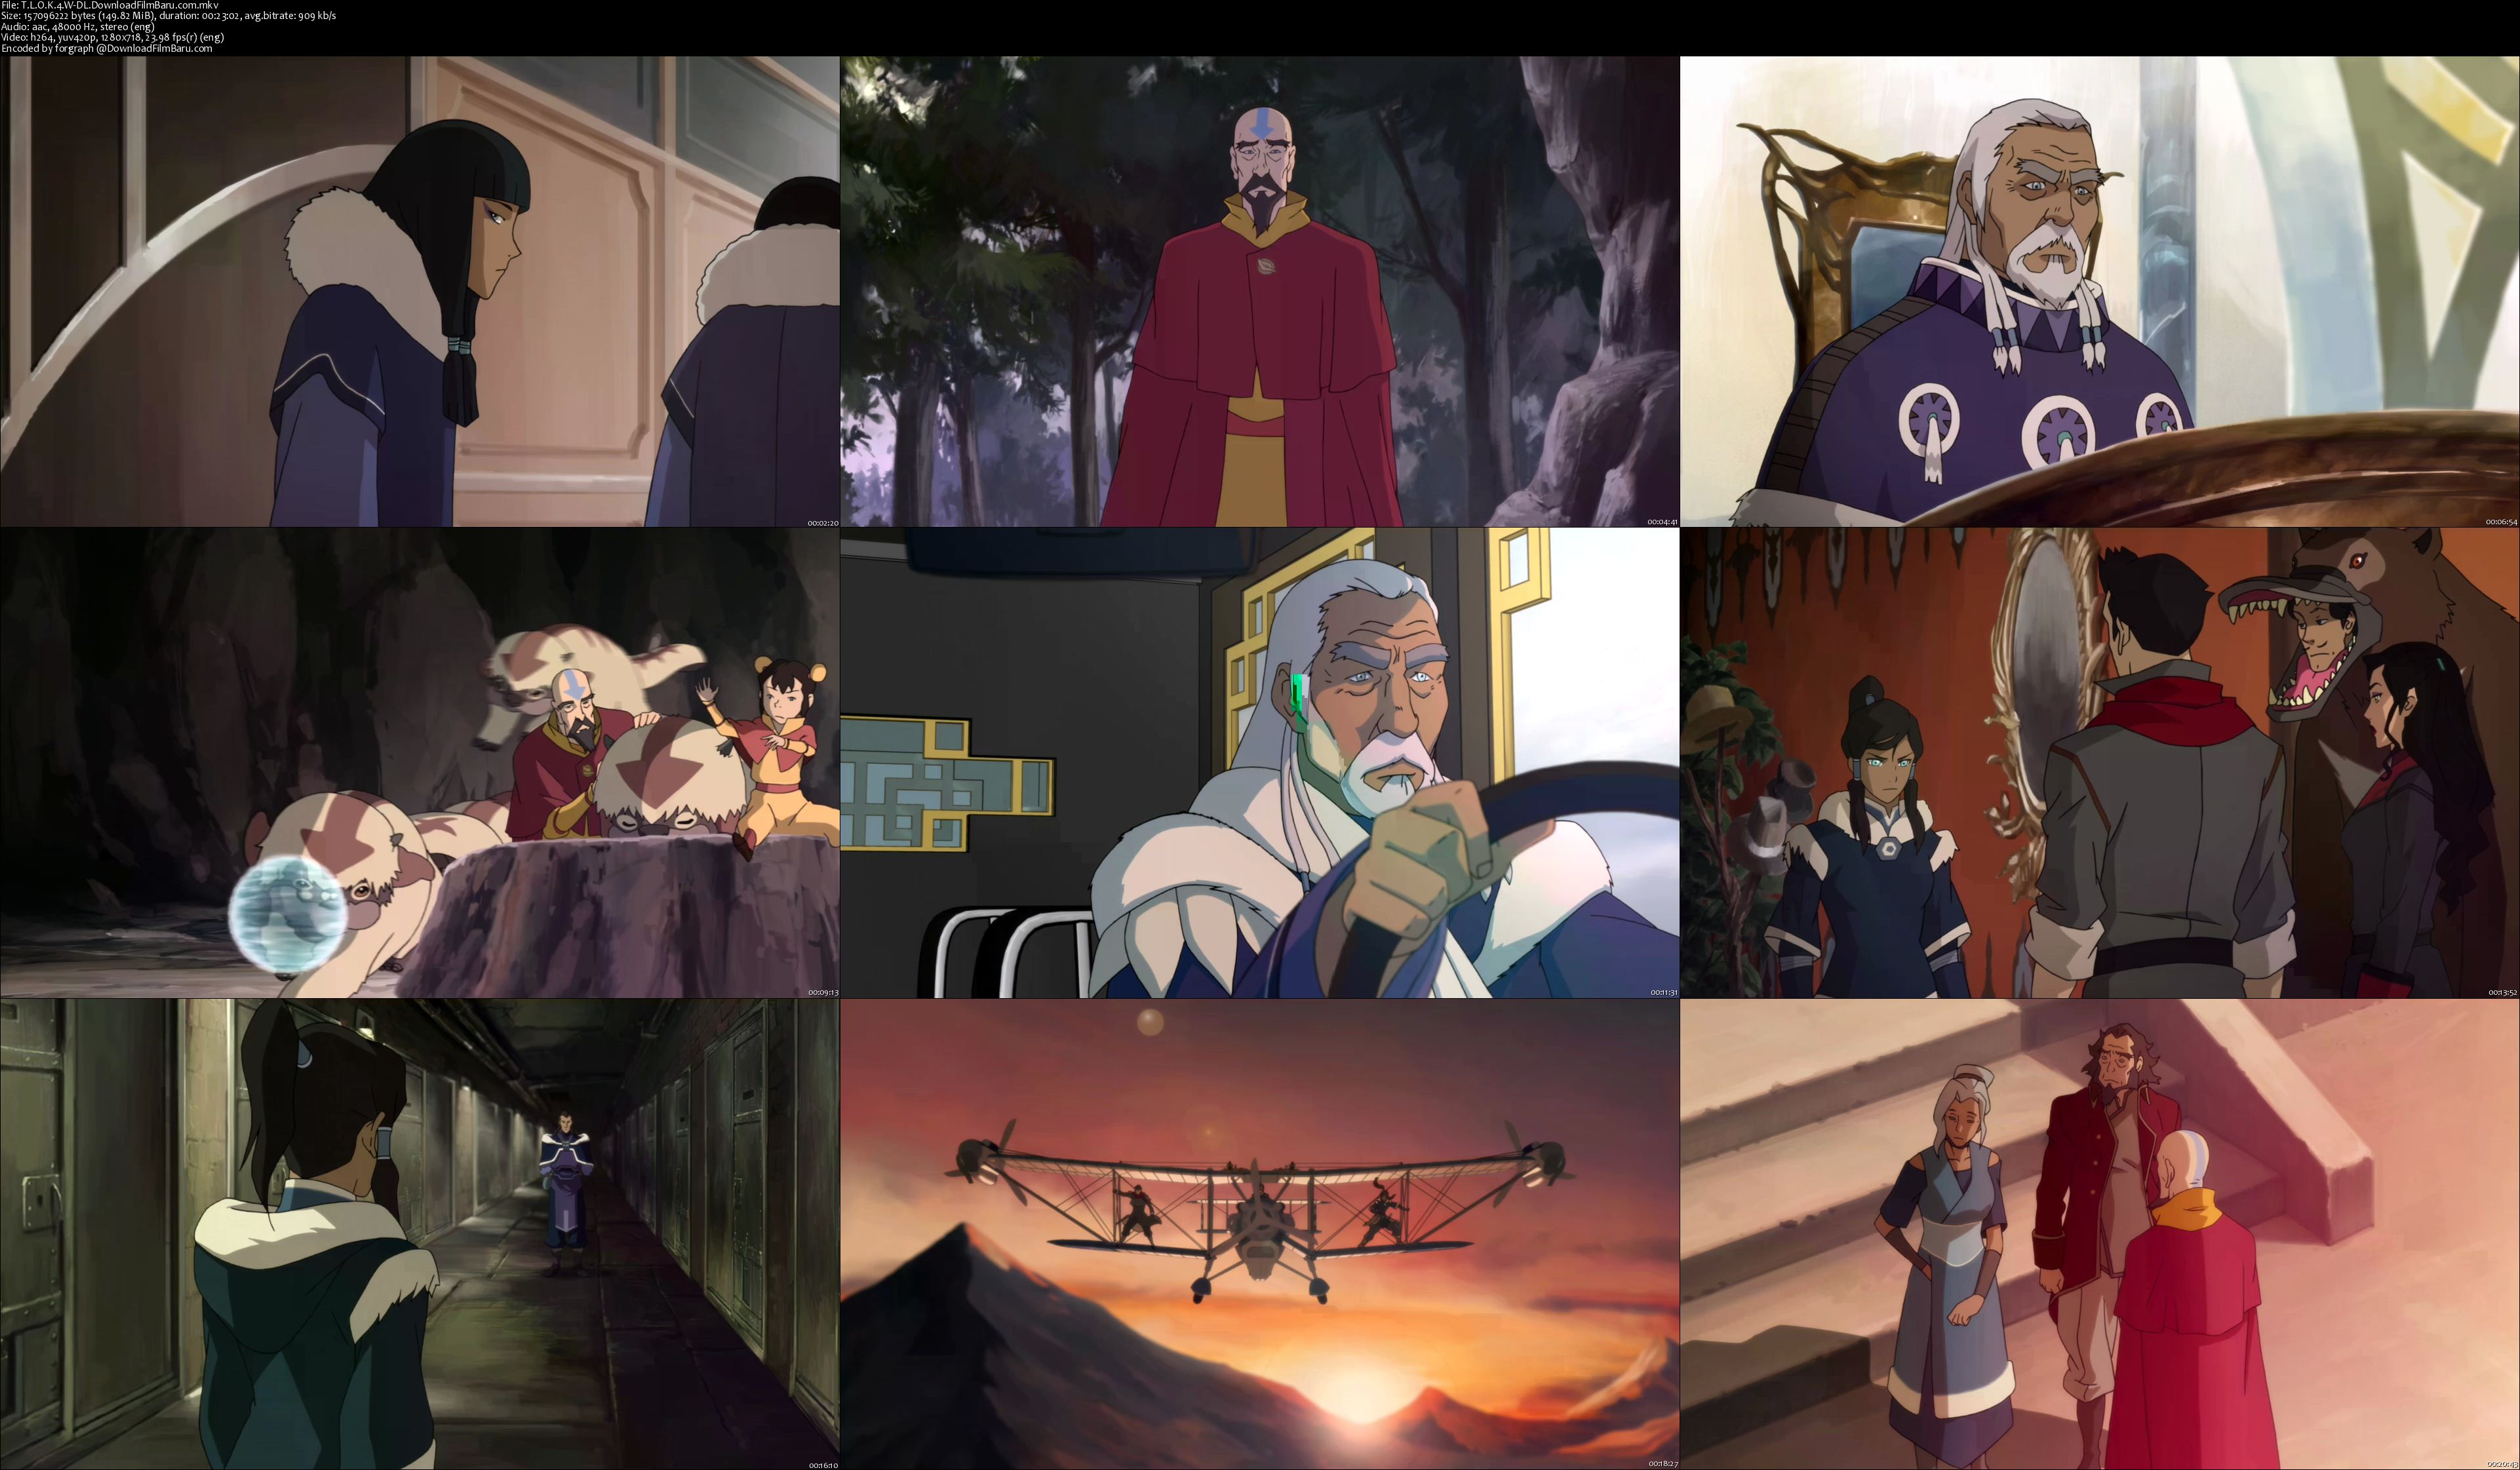 download avatar the legend of korra book 4 sub indo 720p